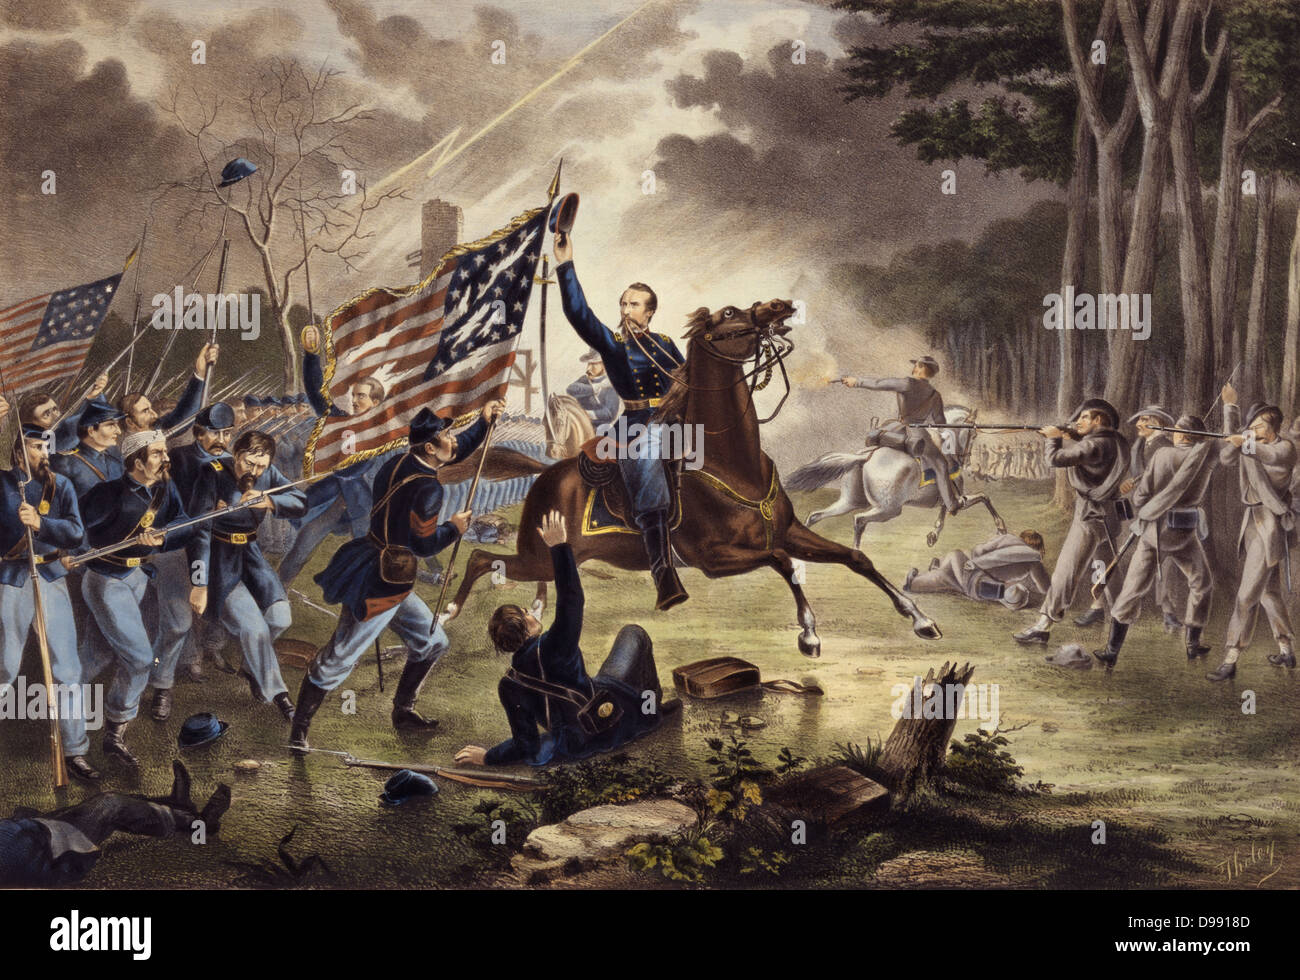 American Civil War 1861-1865: General Kearney's gallant charge, Battle of Chantilly (Ox Hill), Virginia, 1 September - Stock Image